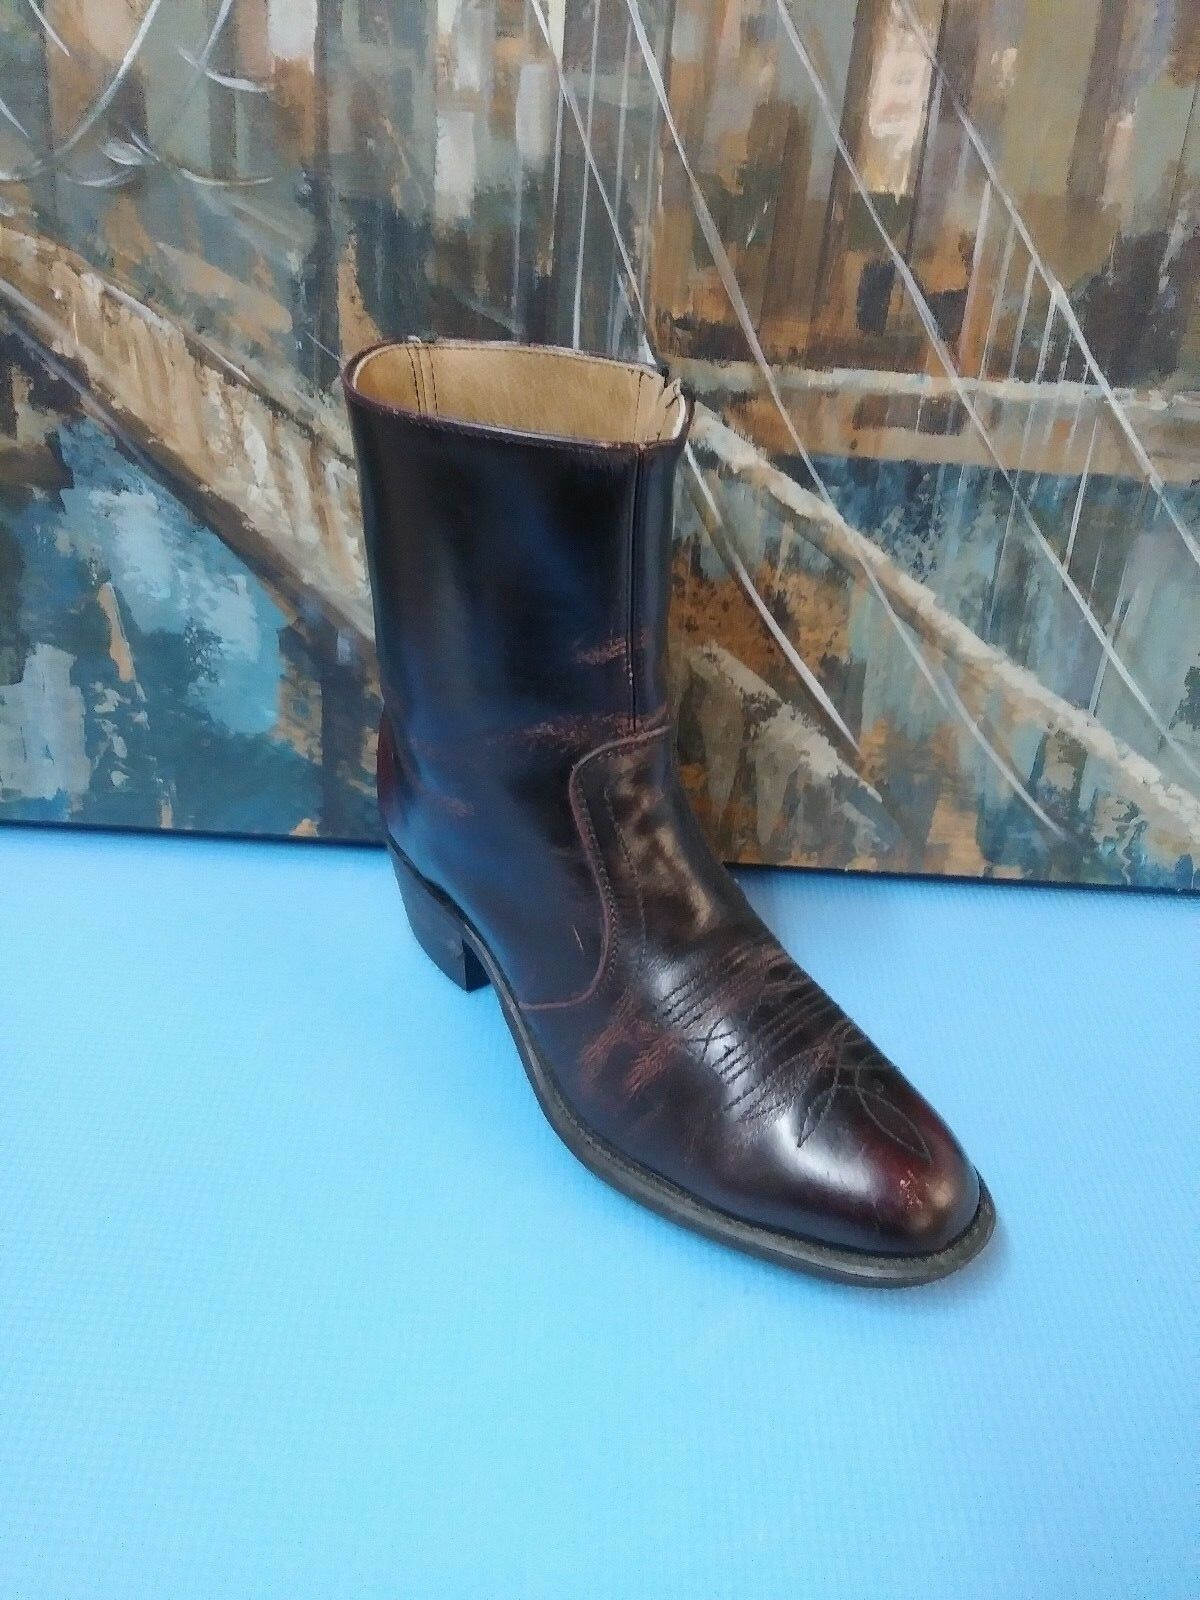 UKW Leather Ankle Boots D Brown Women's Size 7.5 D Boots US Side Zip 115b30